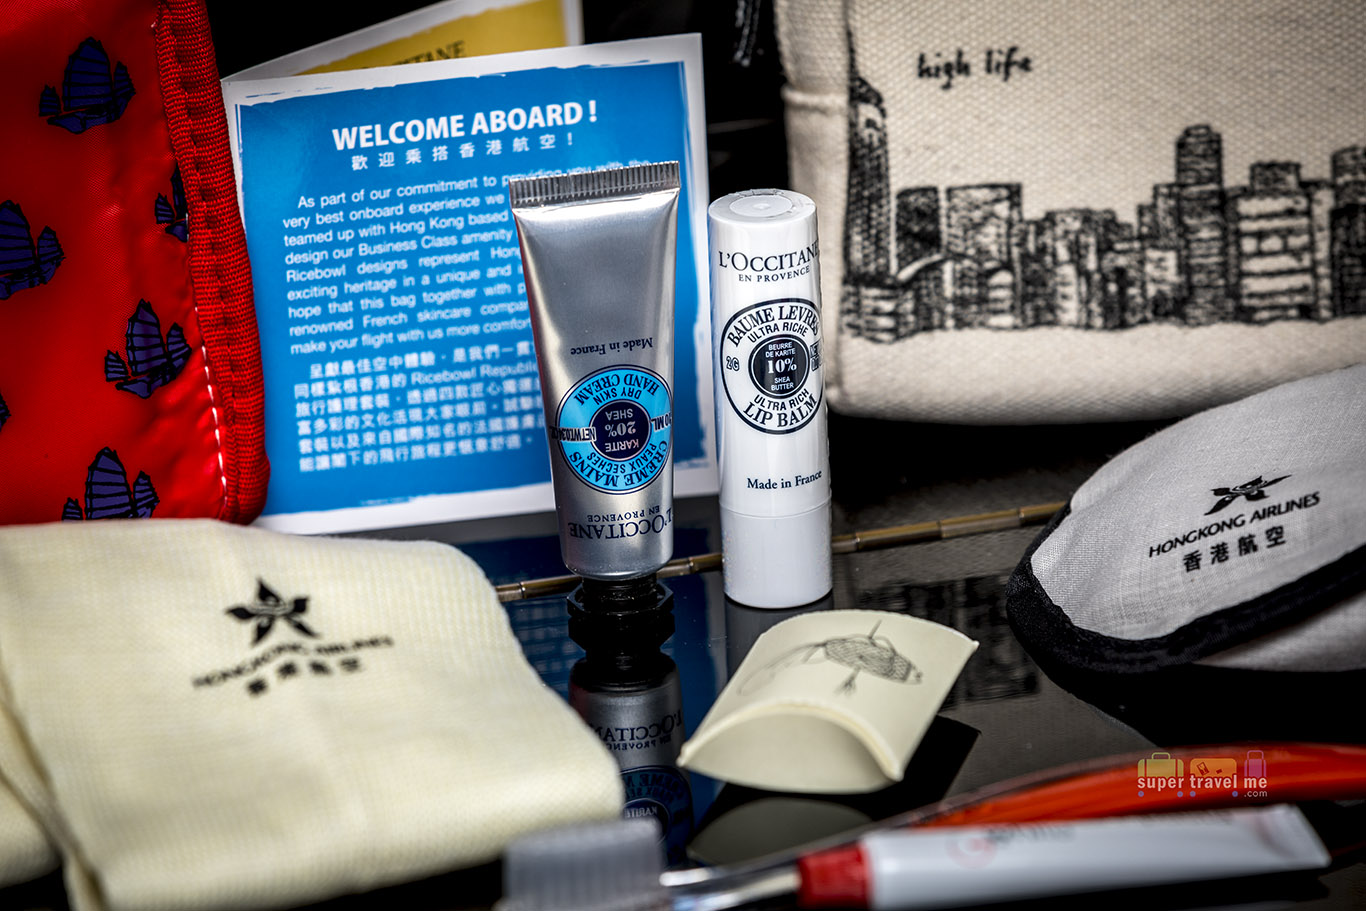 L'occitane Hand moisturiser and lip balm inside the Hong Kong Airlines amenity kit